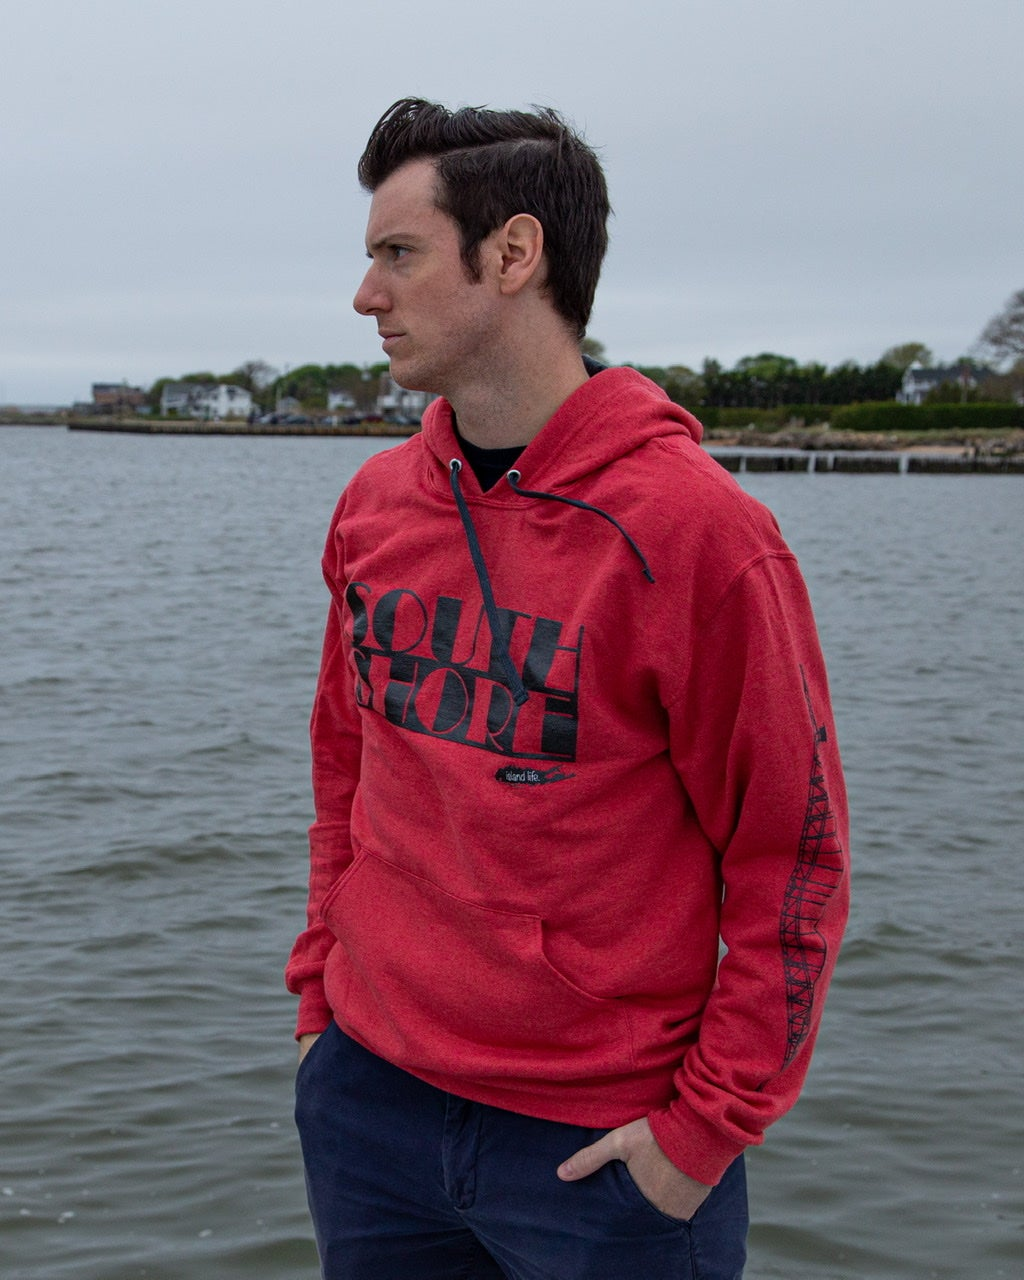 Image of South Shore Lightweight Unisex Hoody